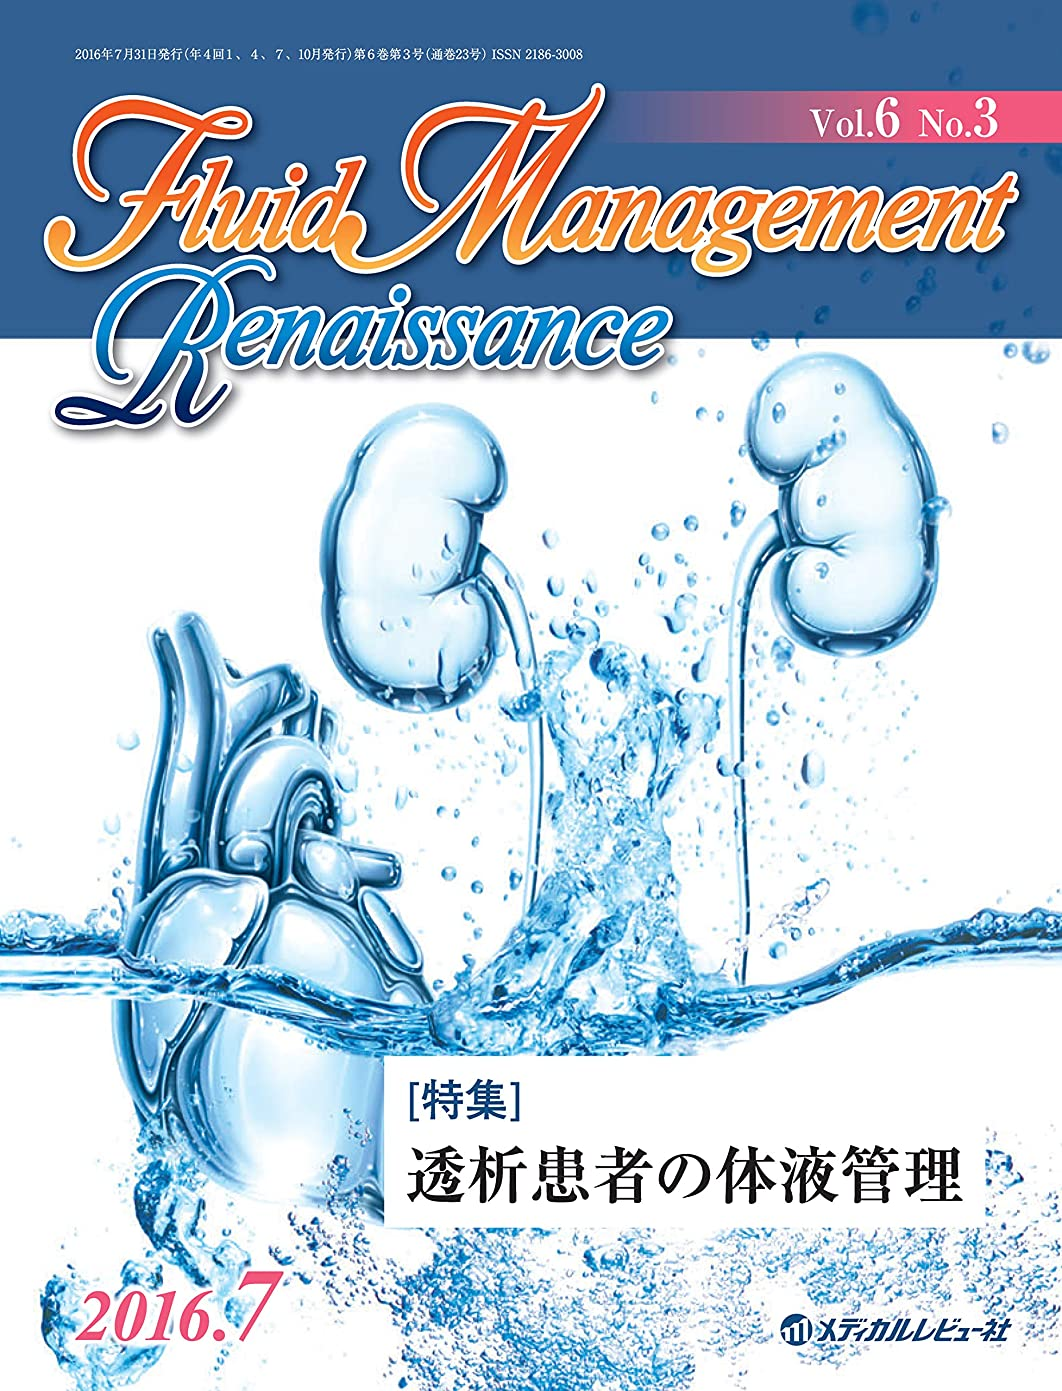 ペグ小売瞳Fluid Management Renaissance 2016年7月号(Vol.6 No.3) [雑誌]